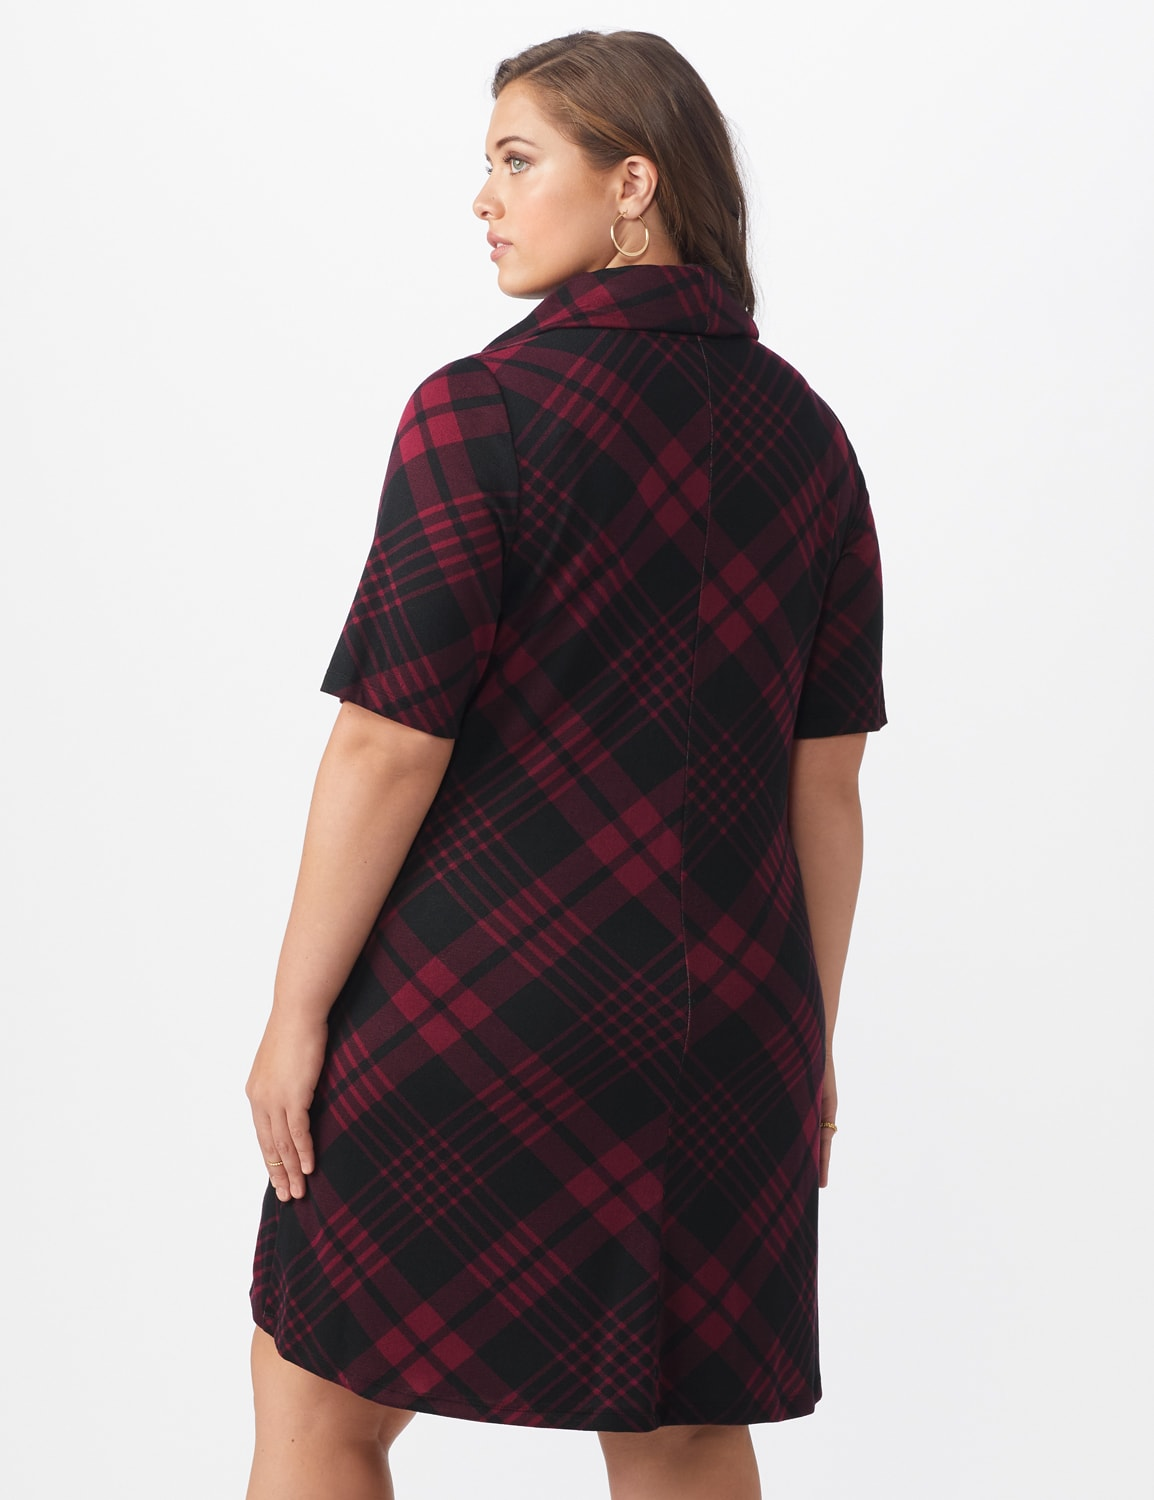 Plaid Cowl Neck Dress - Plus - Black/wine - Back